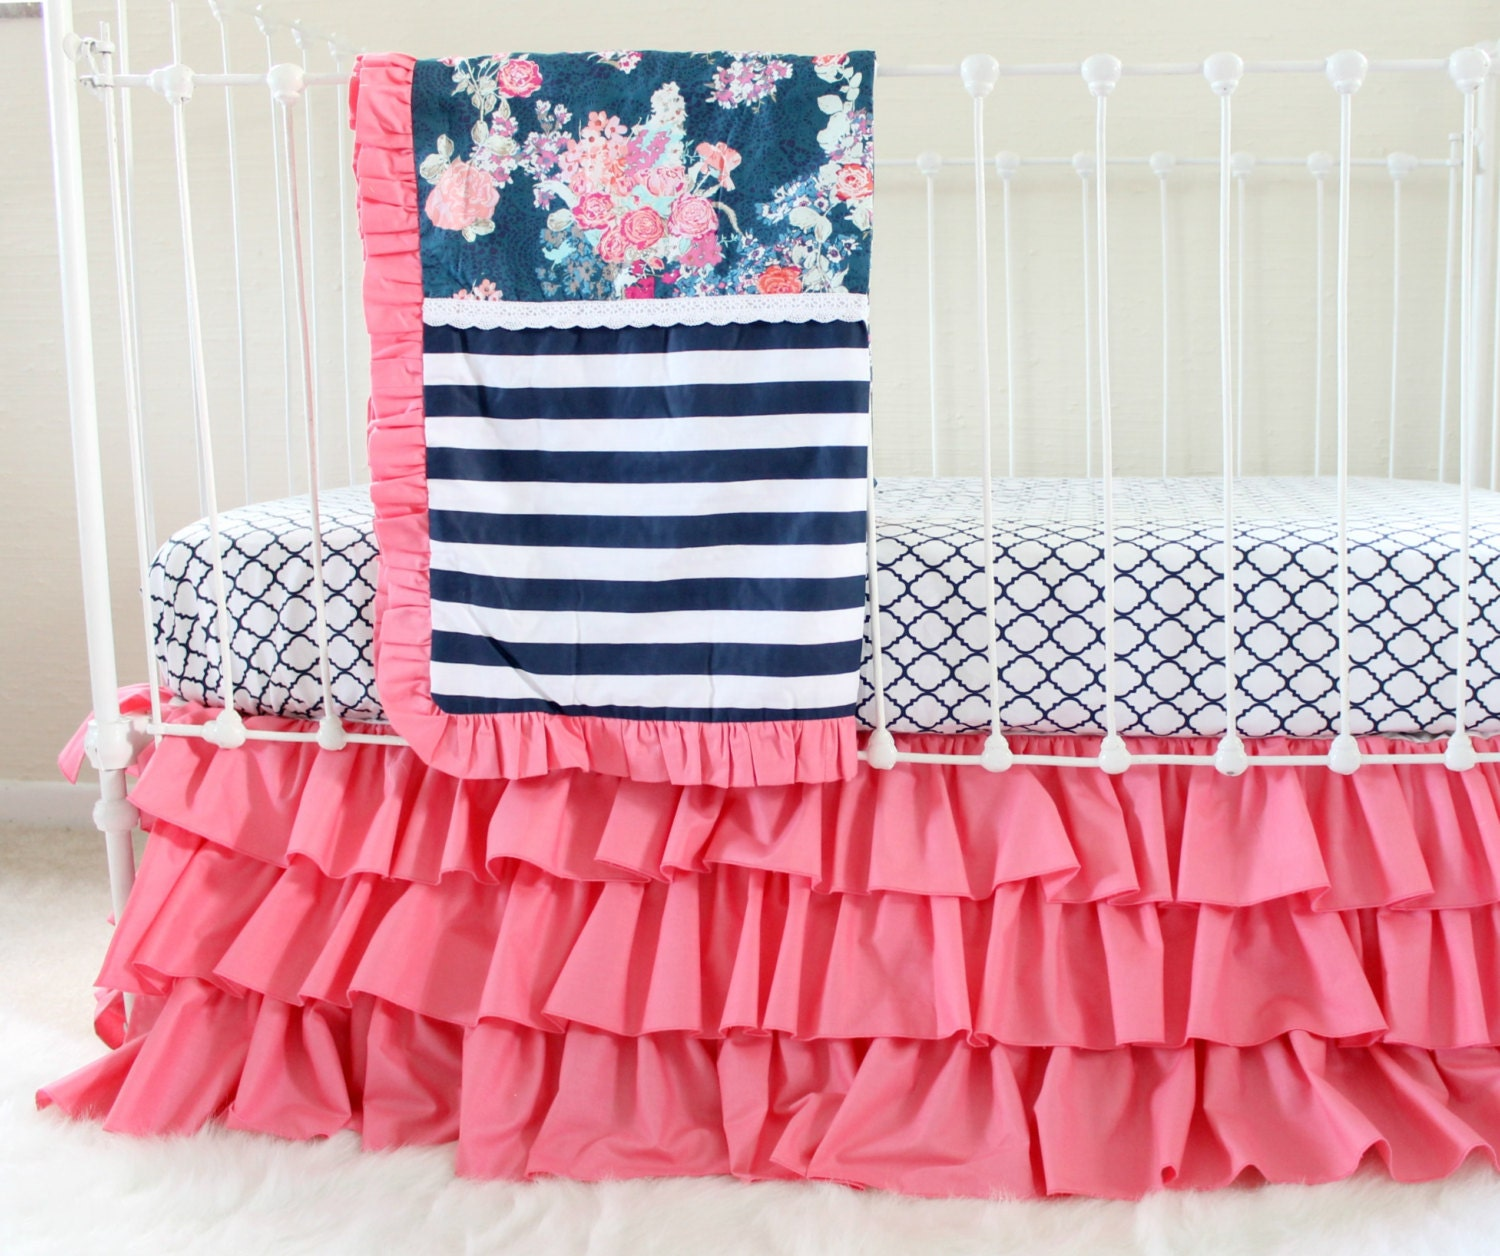 hot pink and navy baby girl bedding custom crib bedding. Black Bedroom Furniture Sets. Home Design Ideas